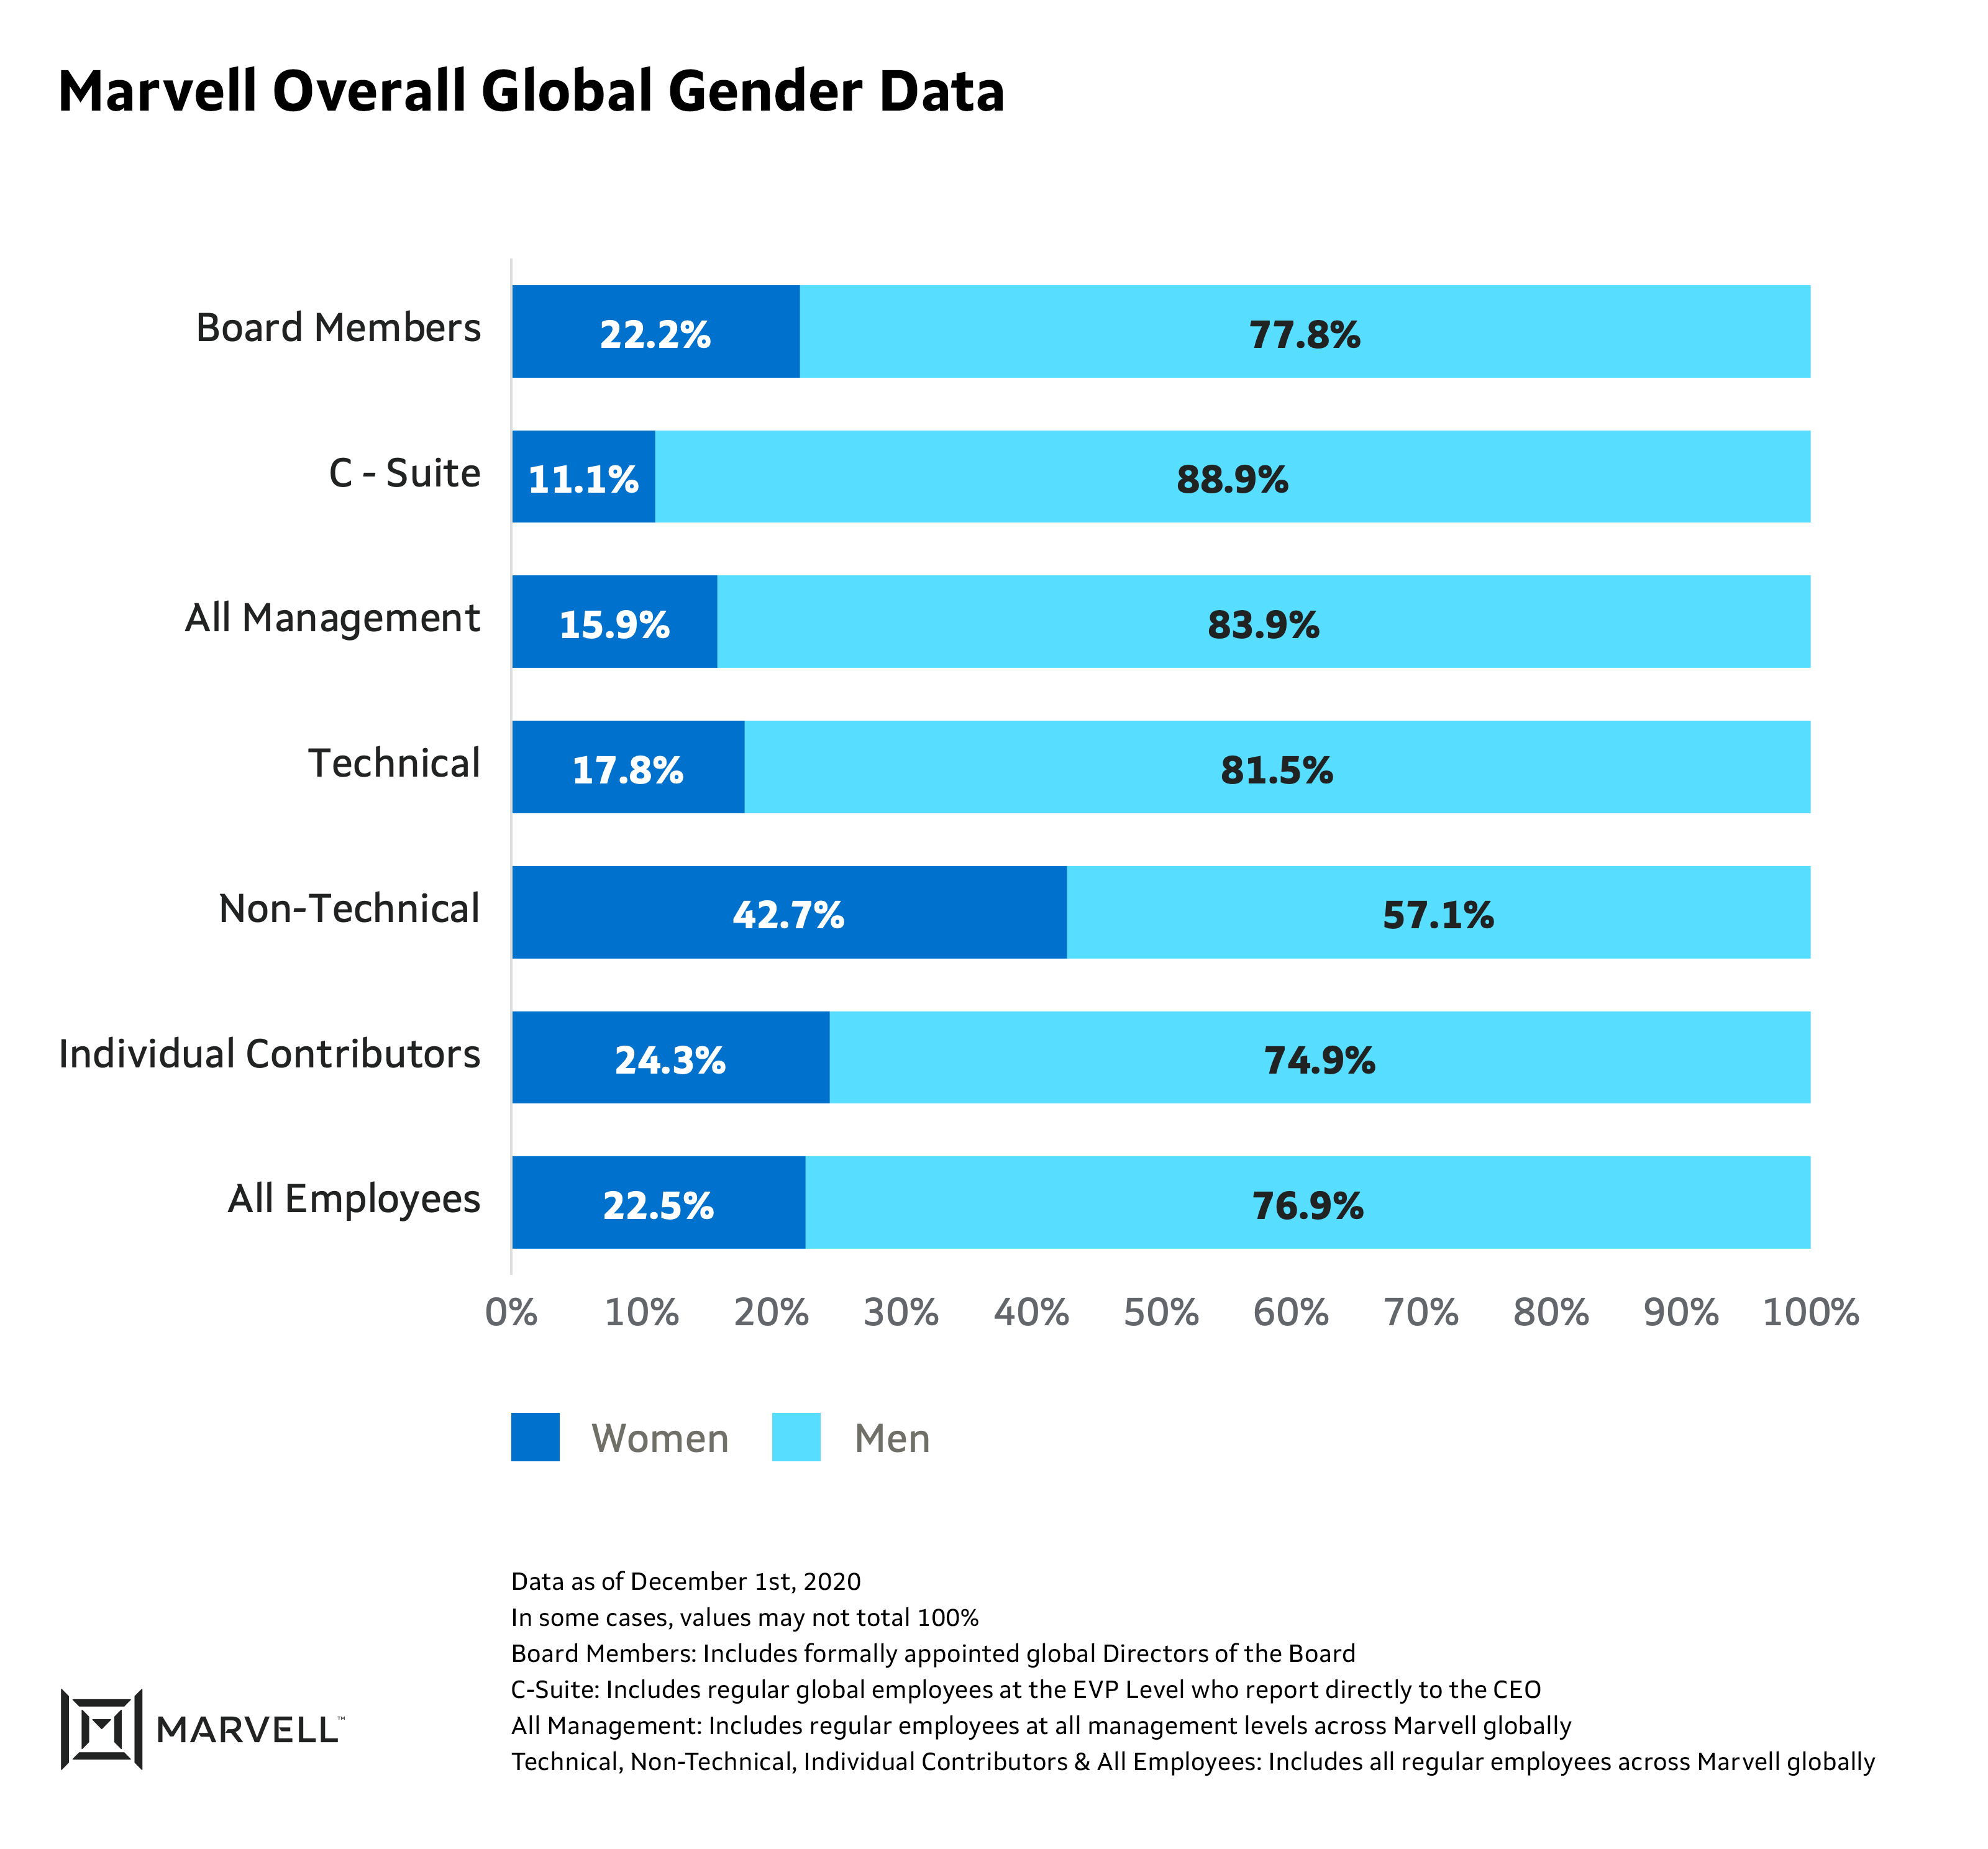 Graph showing Marvell's overall global gender data as of December 2020. Data is displated as a bar graph showing ratio of percentages of women to men in job roles throughout Marvell..  Board Members: 22.2% women, 77.8% men. C-Suite: 11.1% women, 88.9% men. All Management: 15.9% women, 83.9% men. Technical 17.8% women, 81.5% men. Non-Technical: 42.7% women, 57.1% men. Individual Contributors: 24.3% women, 74.9% men. All Employees: 22.5% women, 76.9% men.  Data as of December 1st, 2020. In some cases, values may not total 100%. Board Members: Includes formally appointed global Directors of the Board. C-Suite: Includes regular global employees at the EVP Level who report directly to the CEO. All Management: Includes regular employees at all management levels across Marvell globally. Technical, Non-Technical, Individual Contributors & All Employees: Includes all regular employees across Marvell globally.